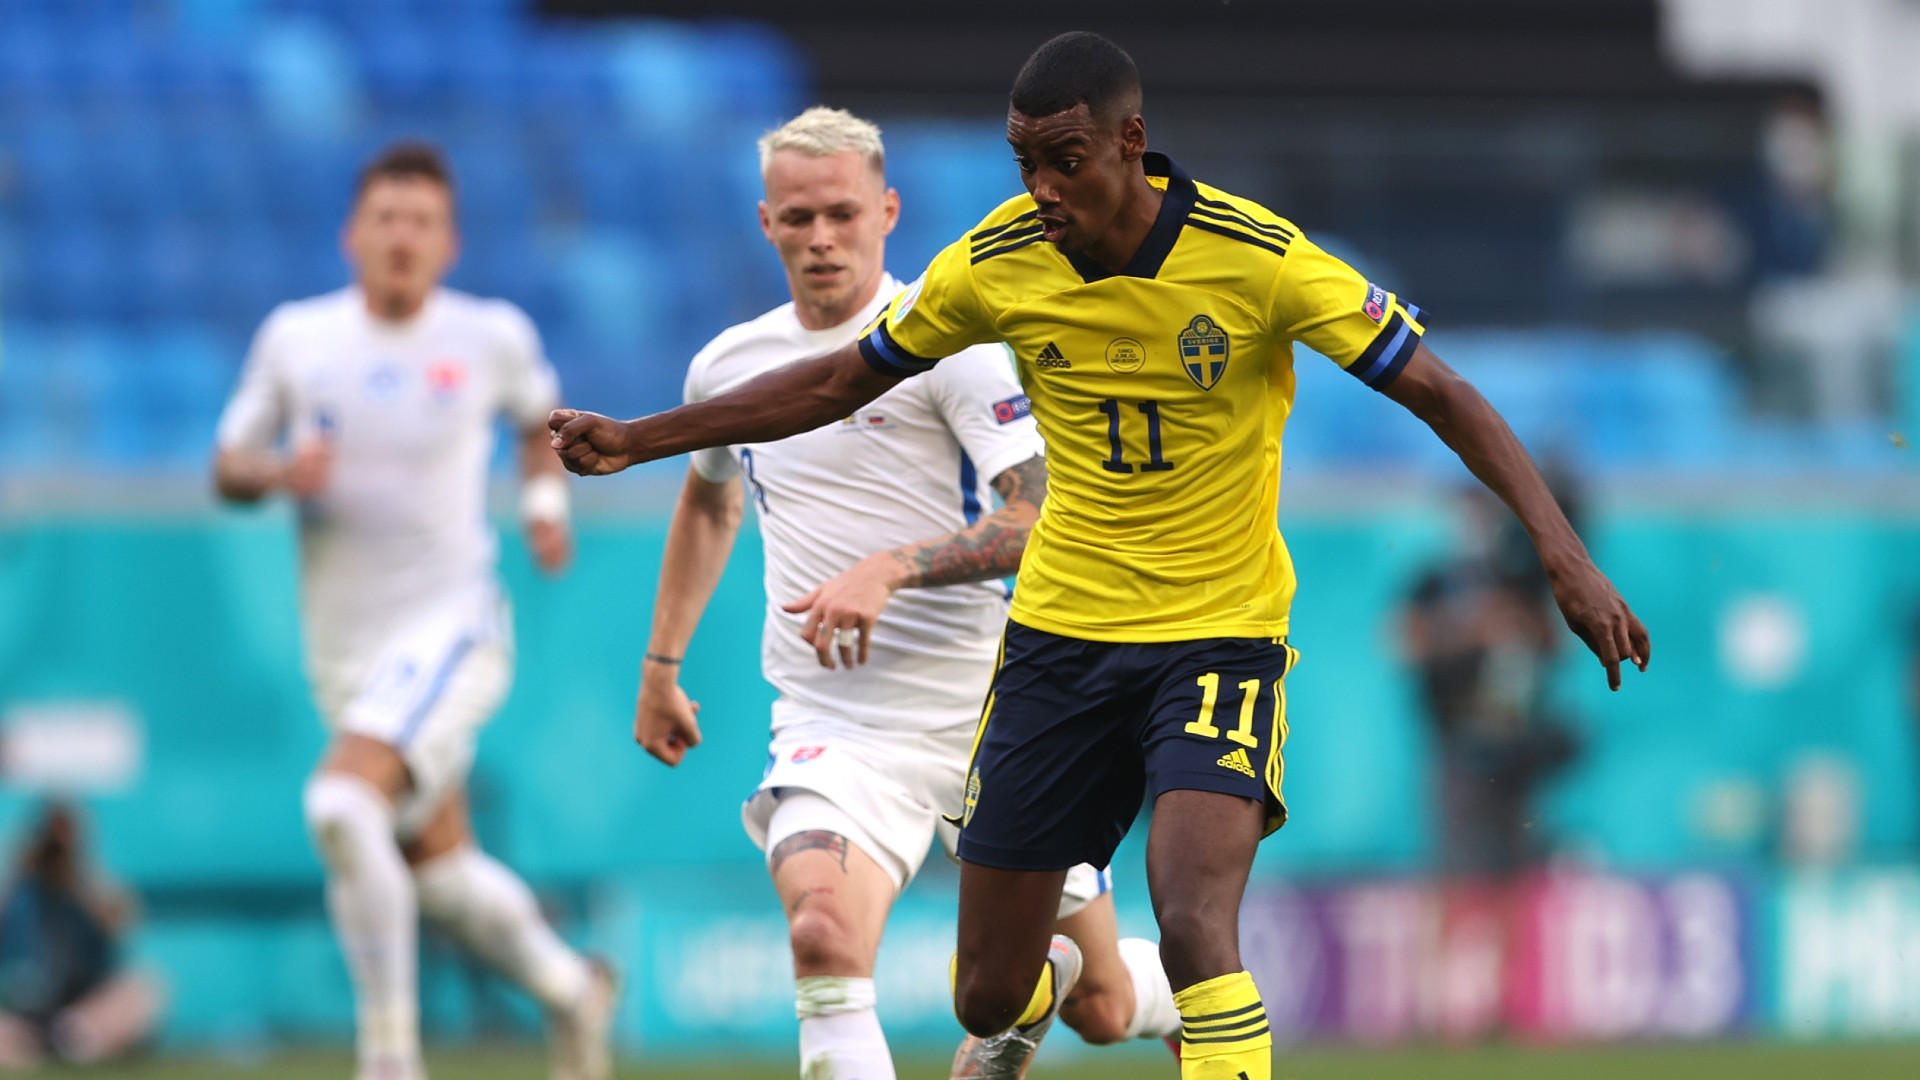 'Exceptional talent' - Arsenal and Liverpool-linked Isak is the star of the show as Sweden beat Slovakia